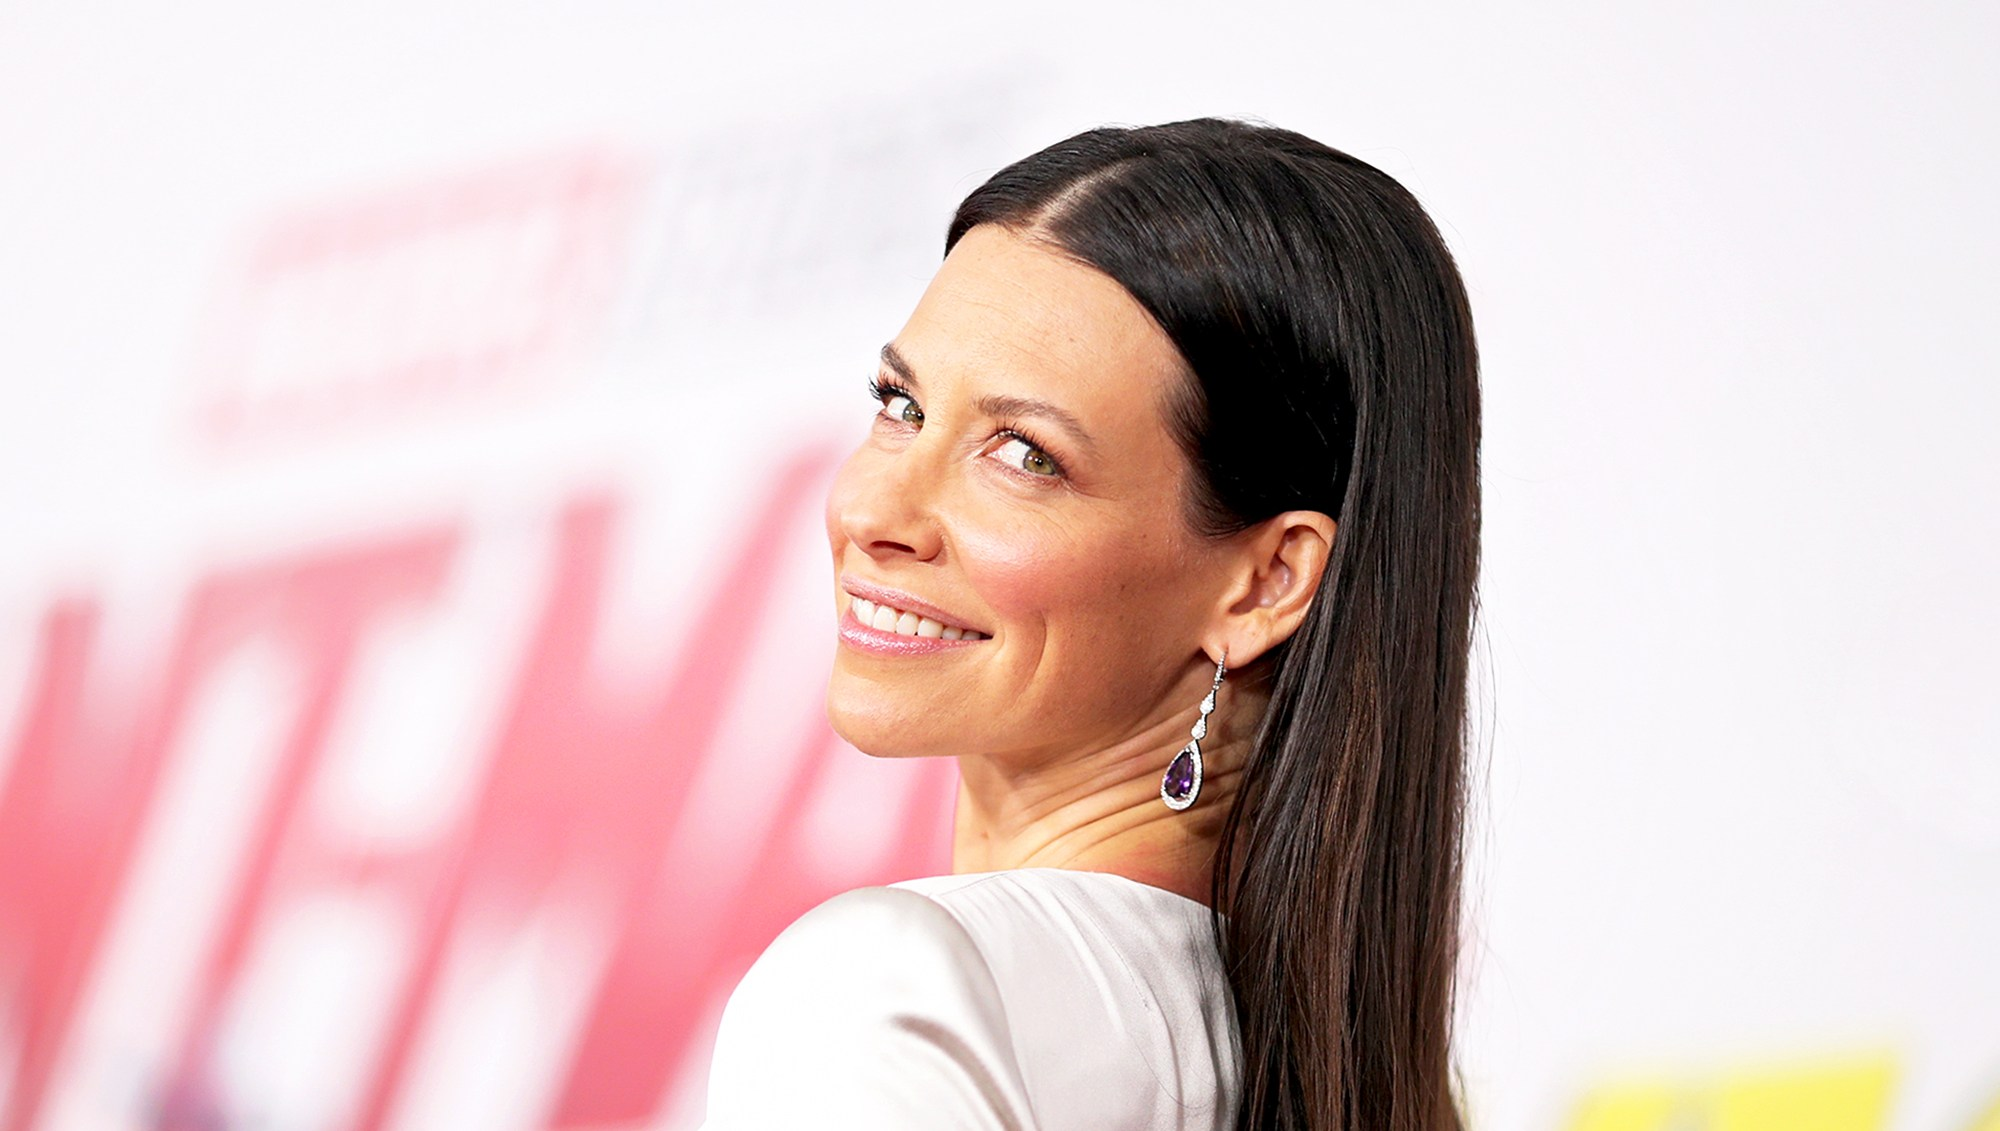 """Evangeline Lilly attends the 2018 premiere of Disney And Marvel's """"Ant-Man And The Wasp"""" in Los Angeles, California."""